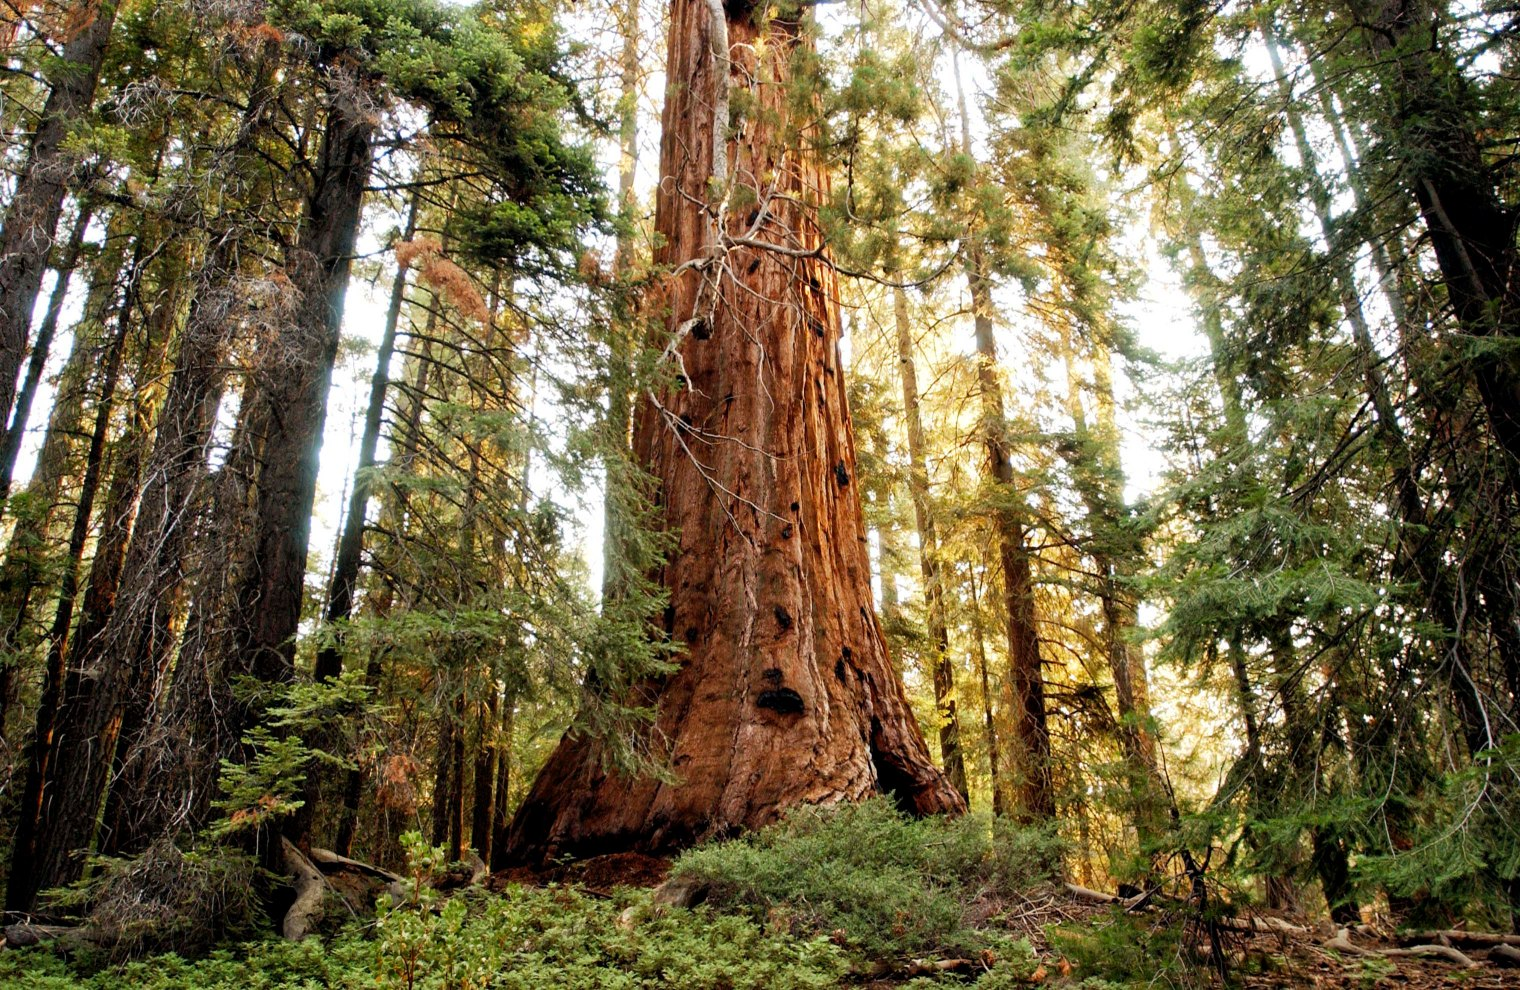 A sequoia tree, Trail of the 100 Giants, California.